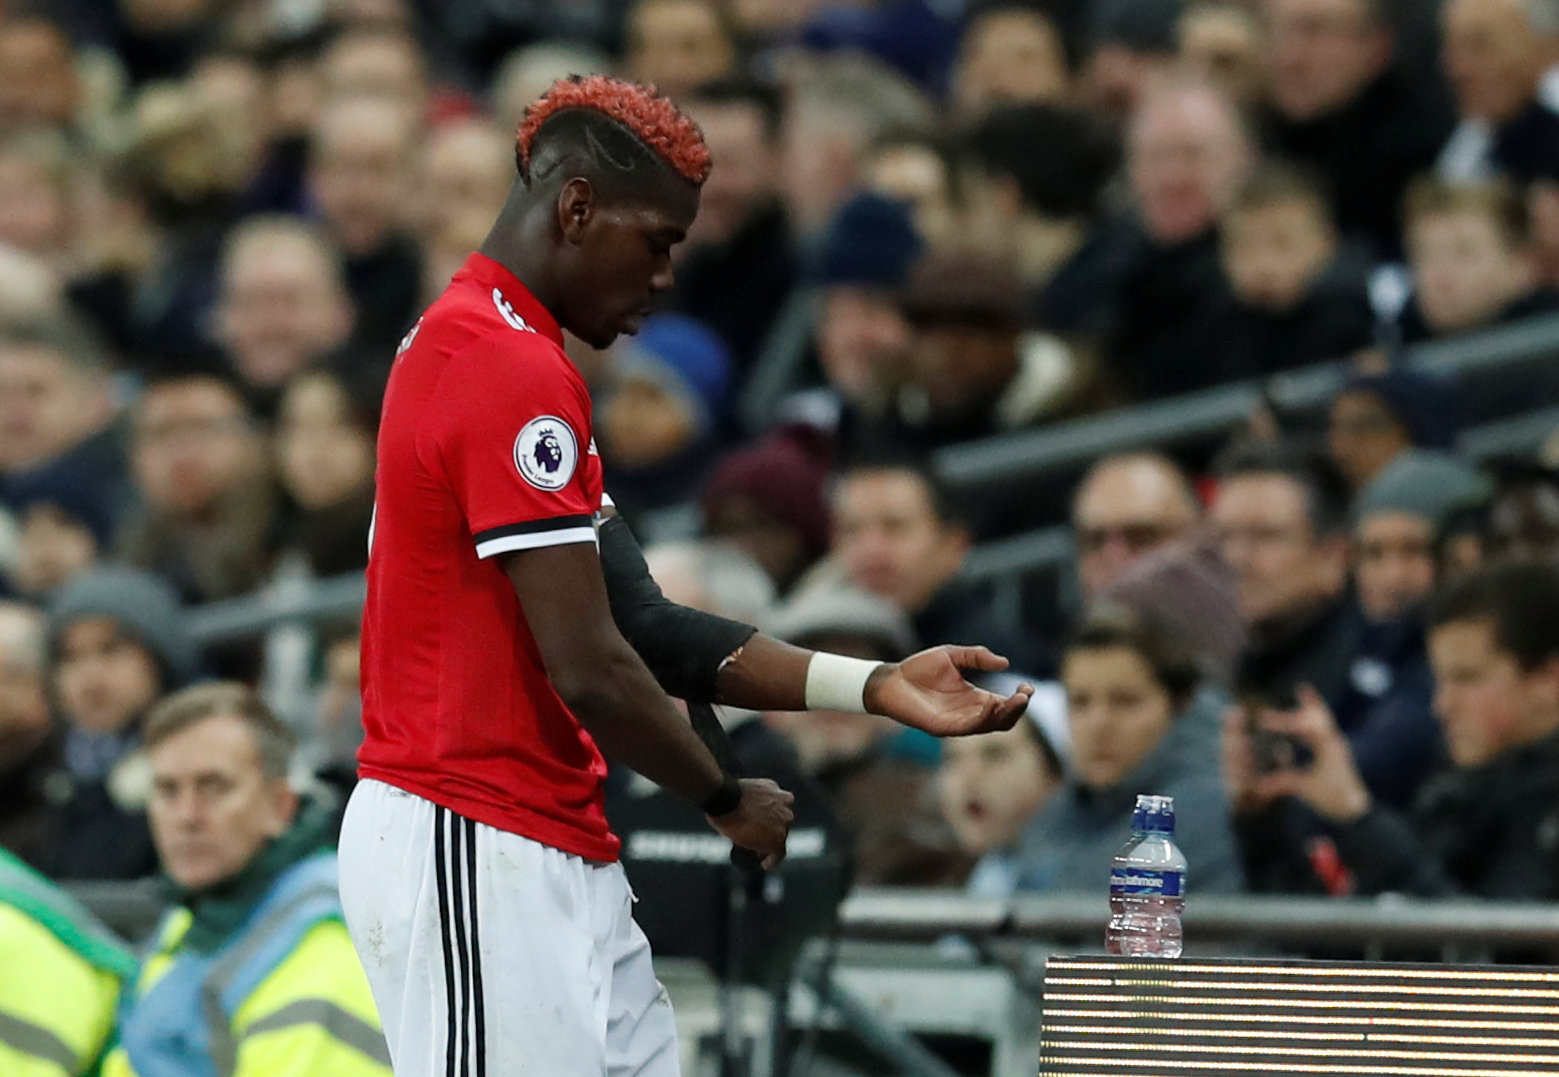 Pogba exit talks are false insists Jose Mourinho amidst Real Madrid rumours